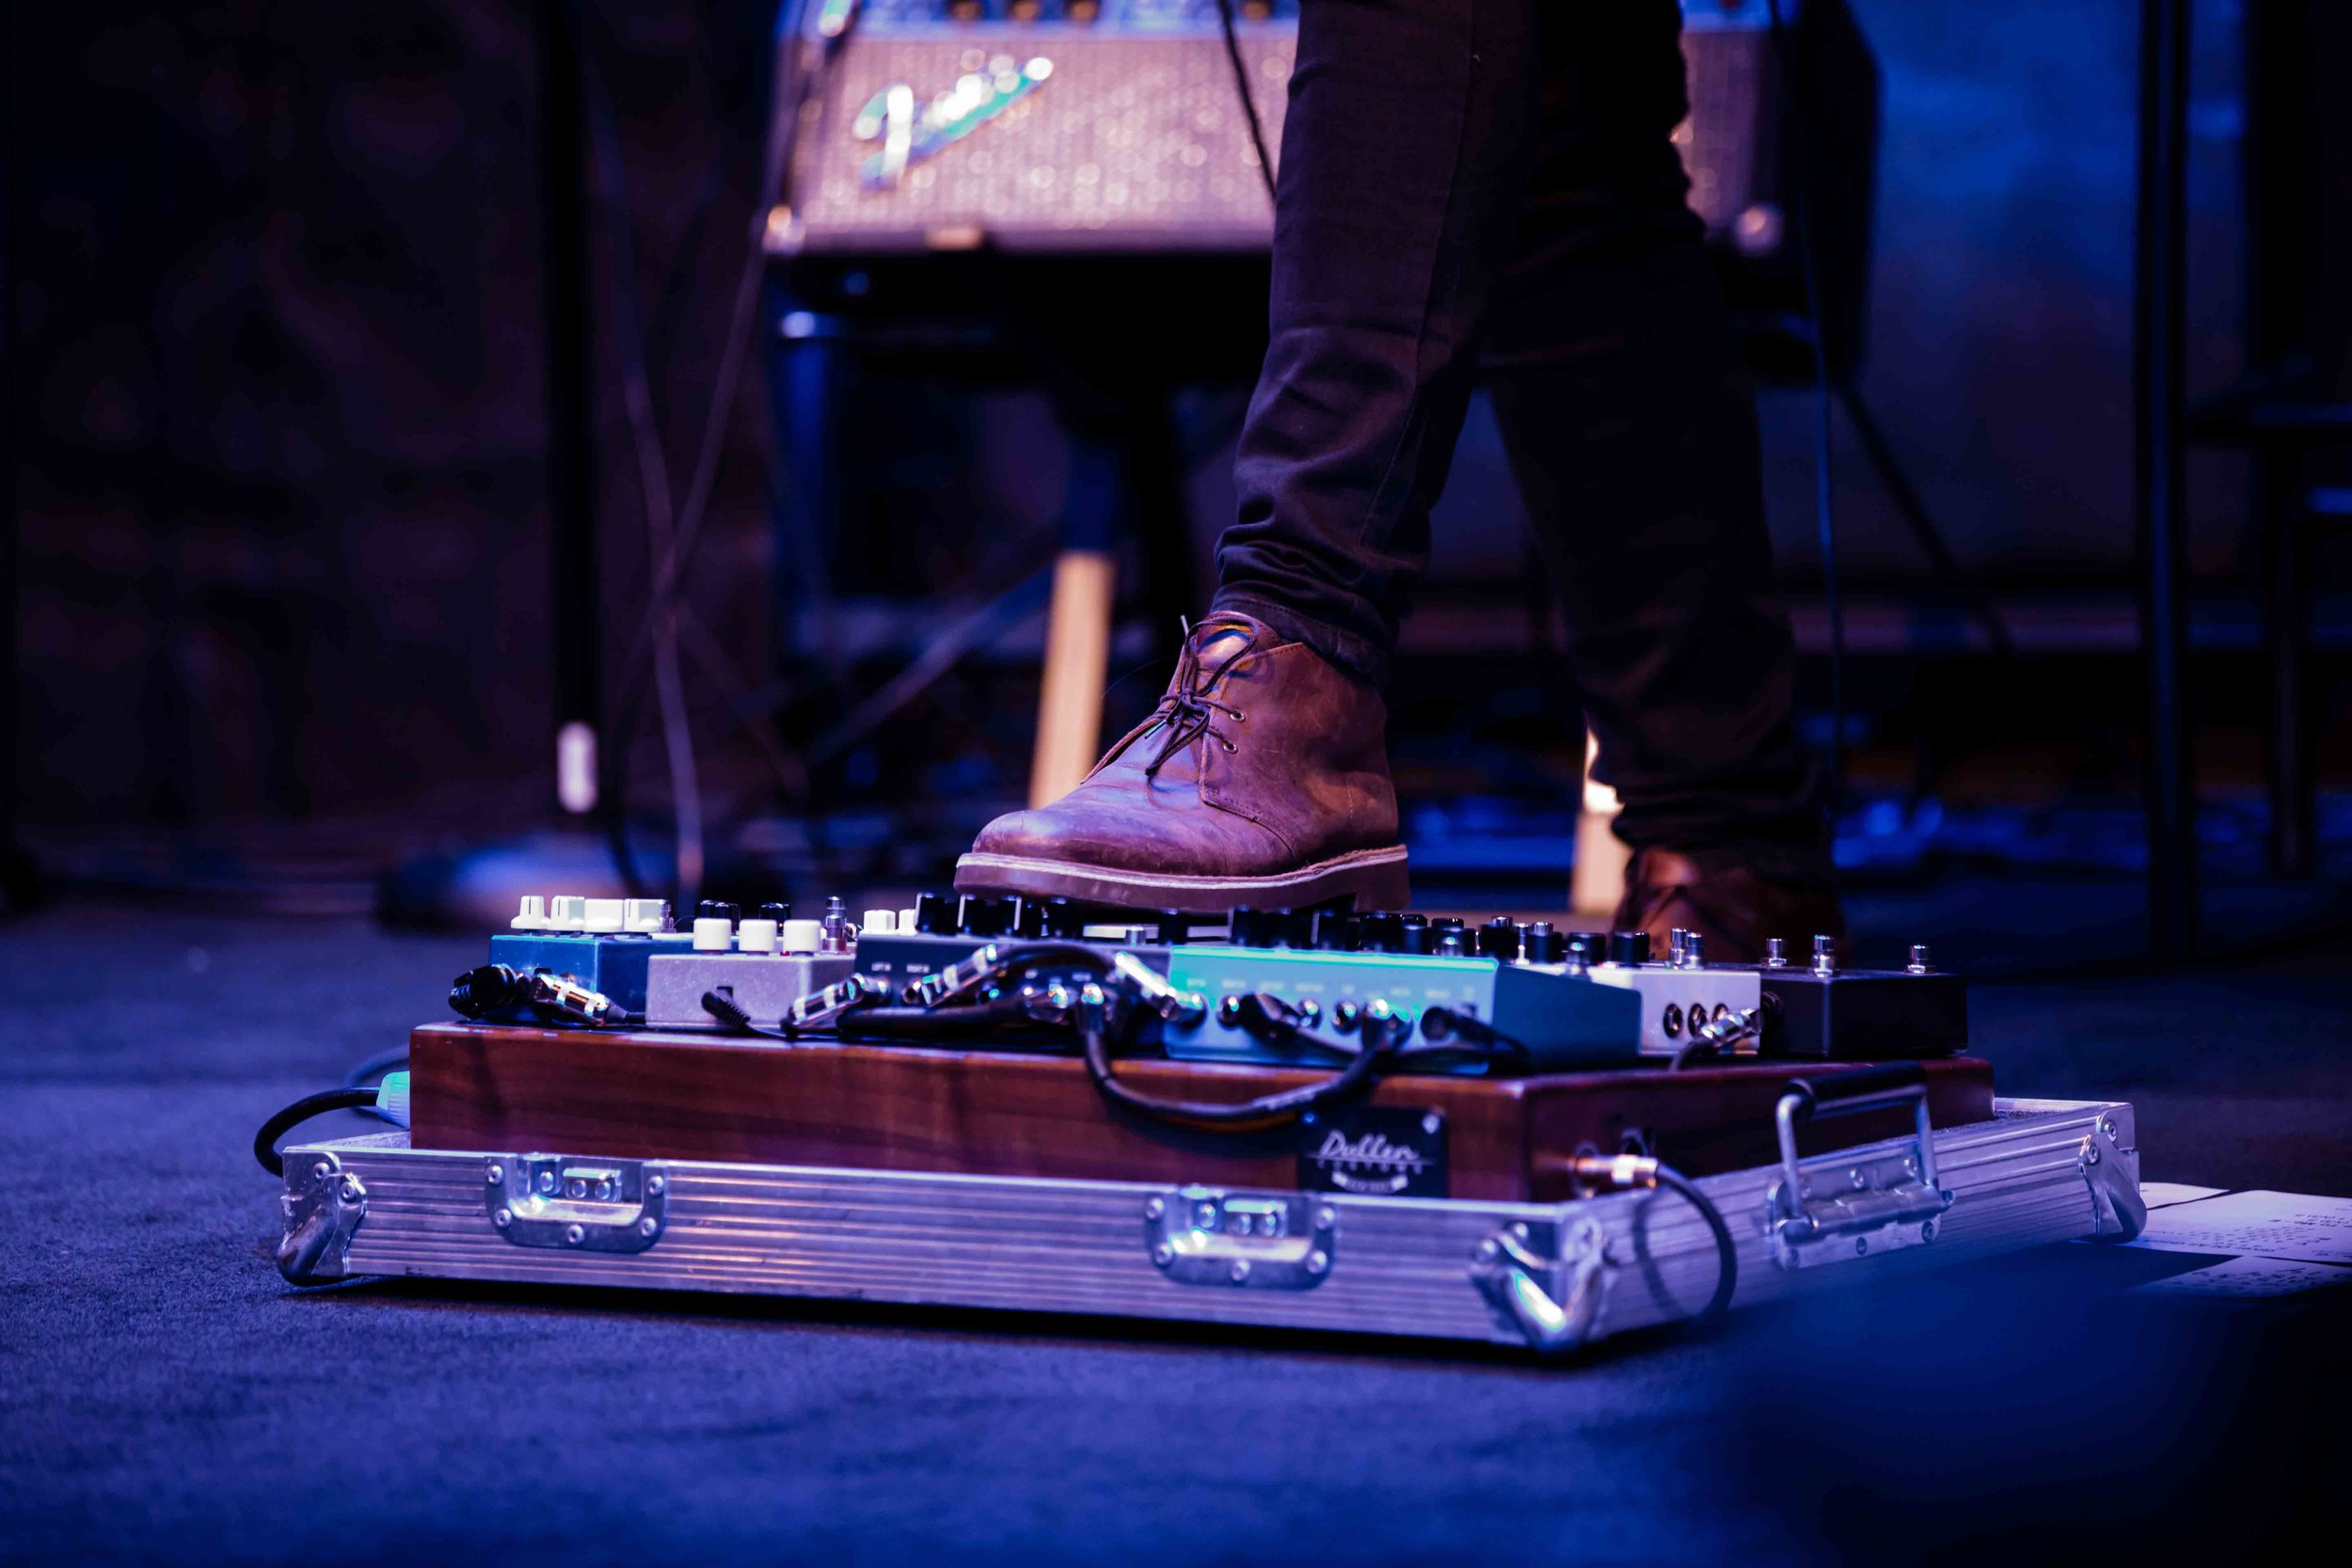 Worship guitarist foot board